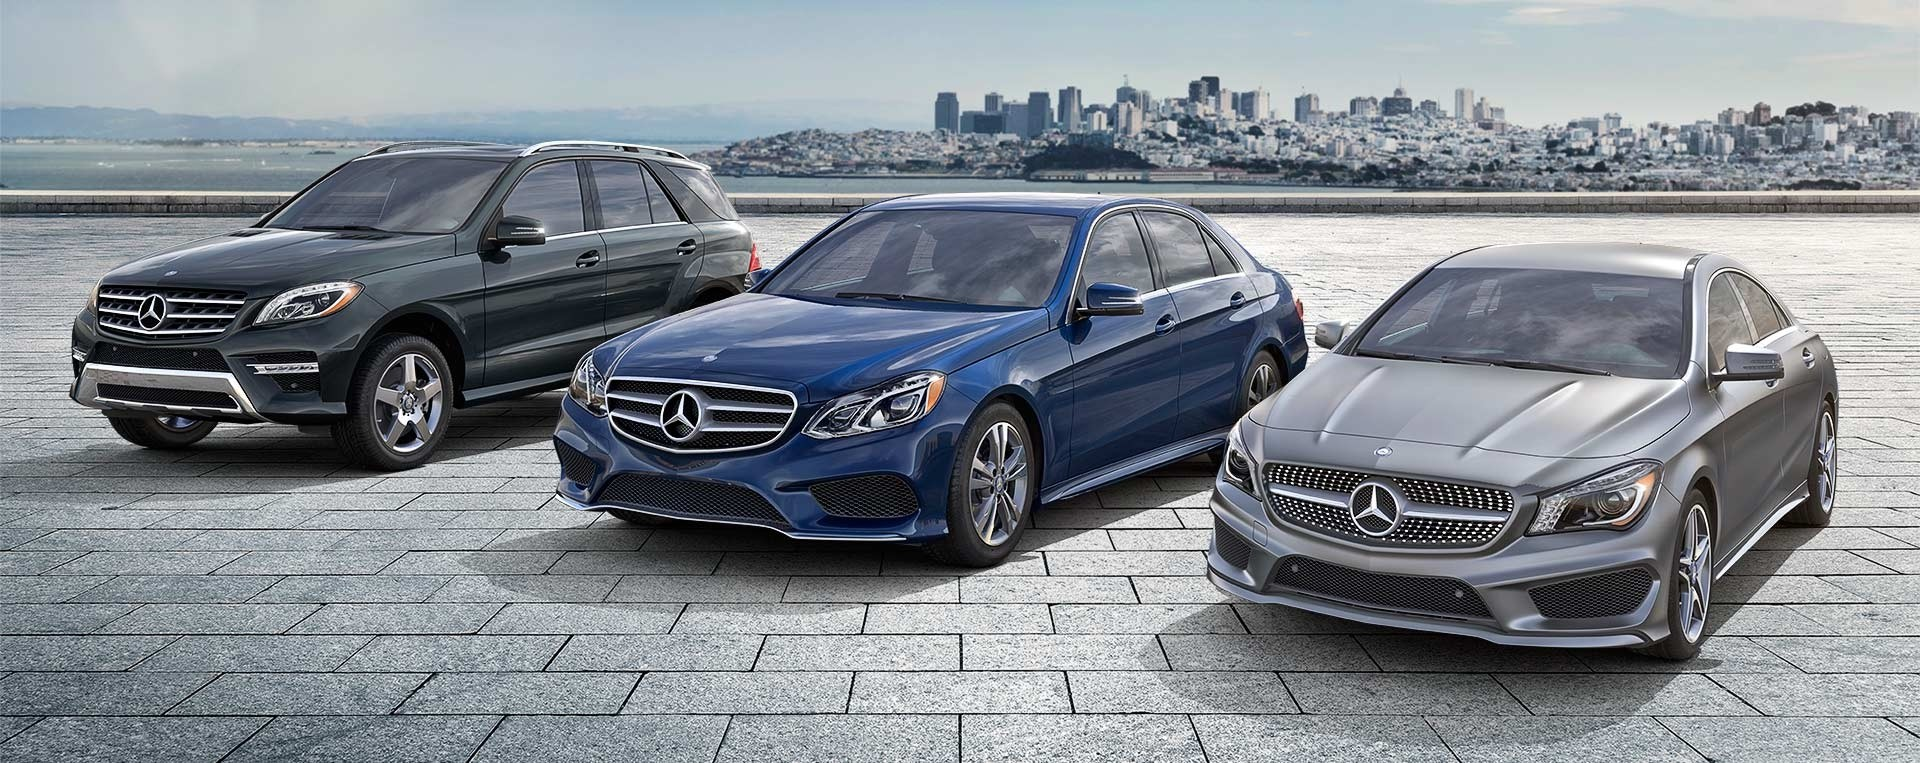 Mercedes benz certified pre owned program vs audi for Certified pre owned mercedes benz